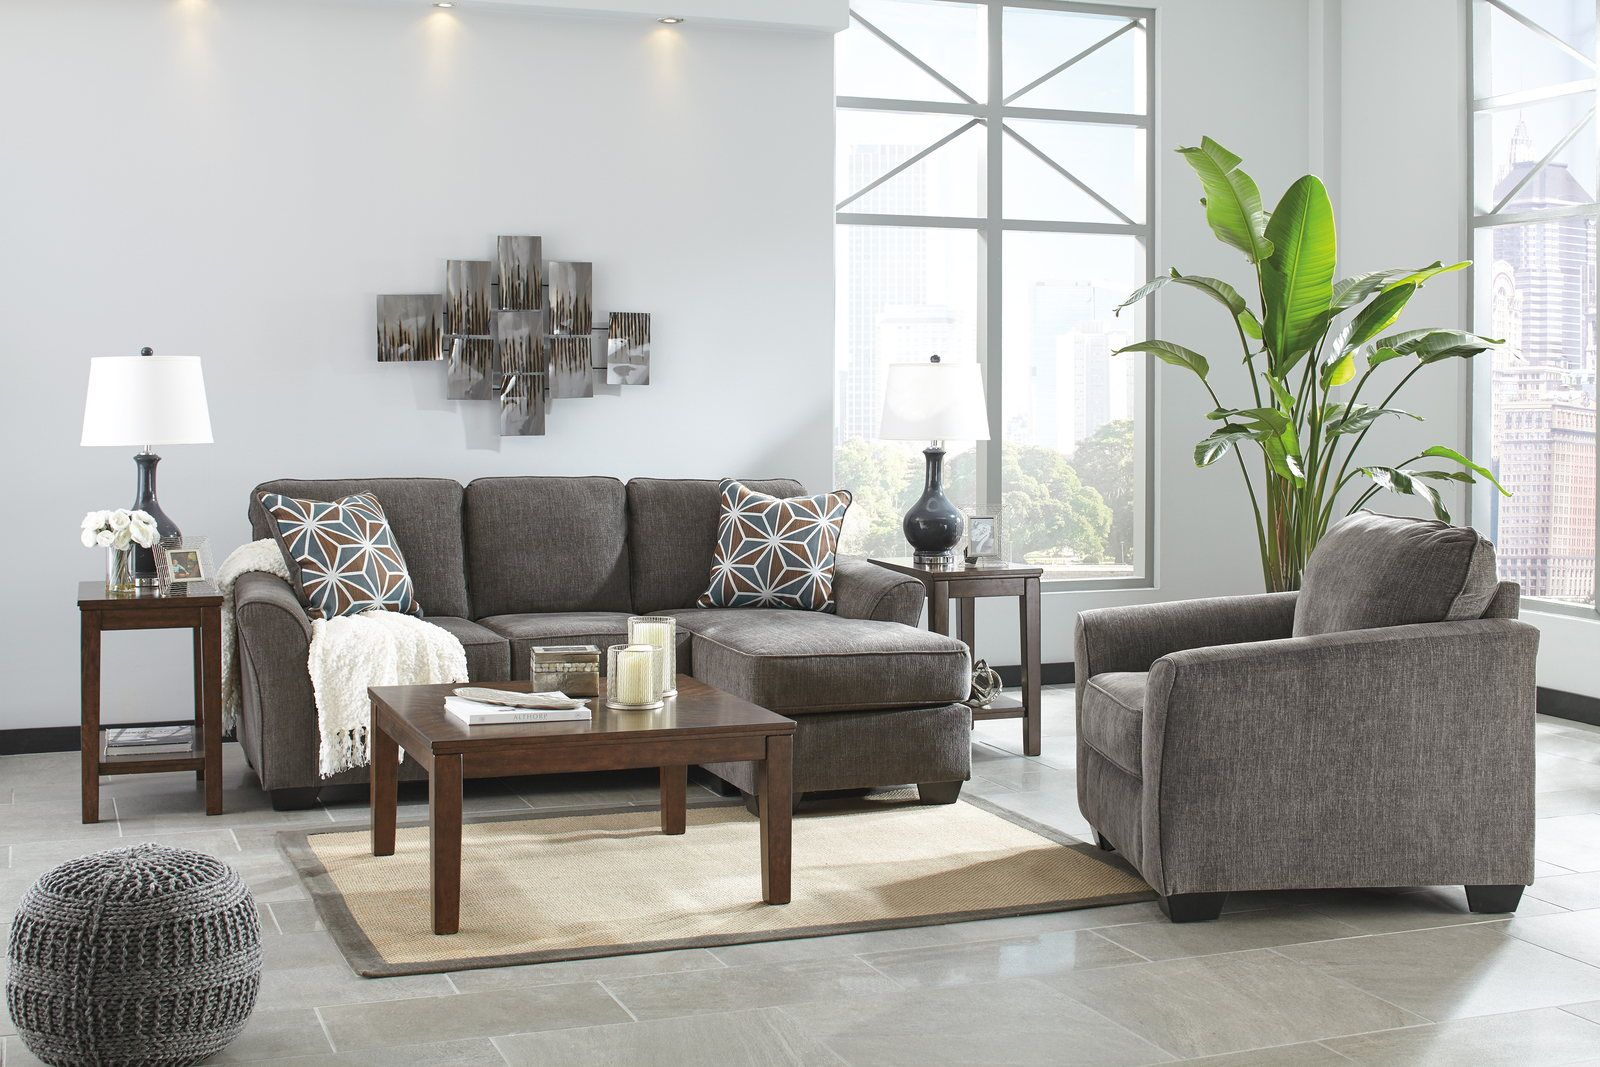 Brise 2-Piece Living Room Set in Slate | Small living room ... on Outdoor Living Room Set id=89709